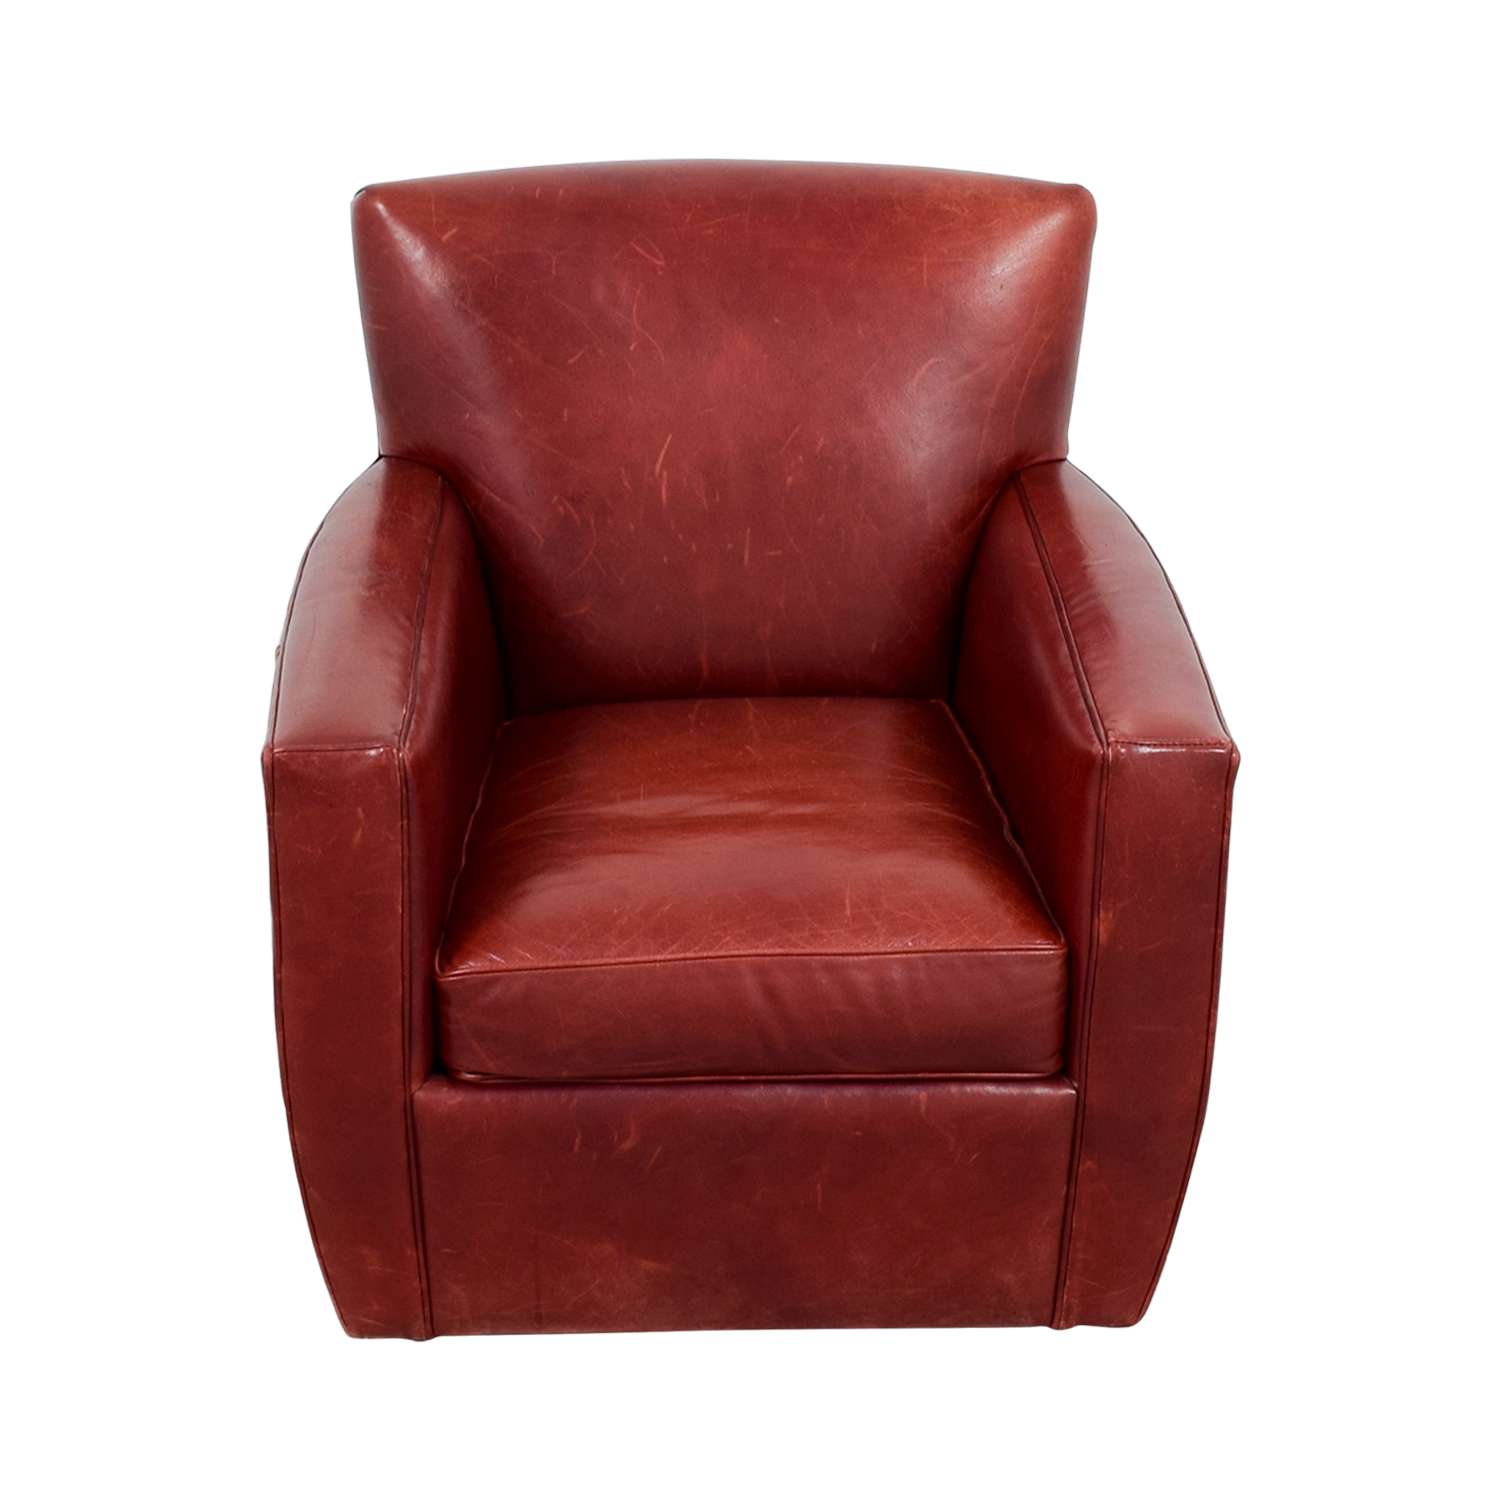 Incroyable ... Crate U0026 Barrel Leather Swivel Chair / Chairs ...